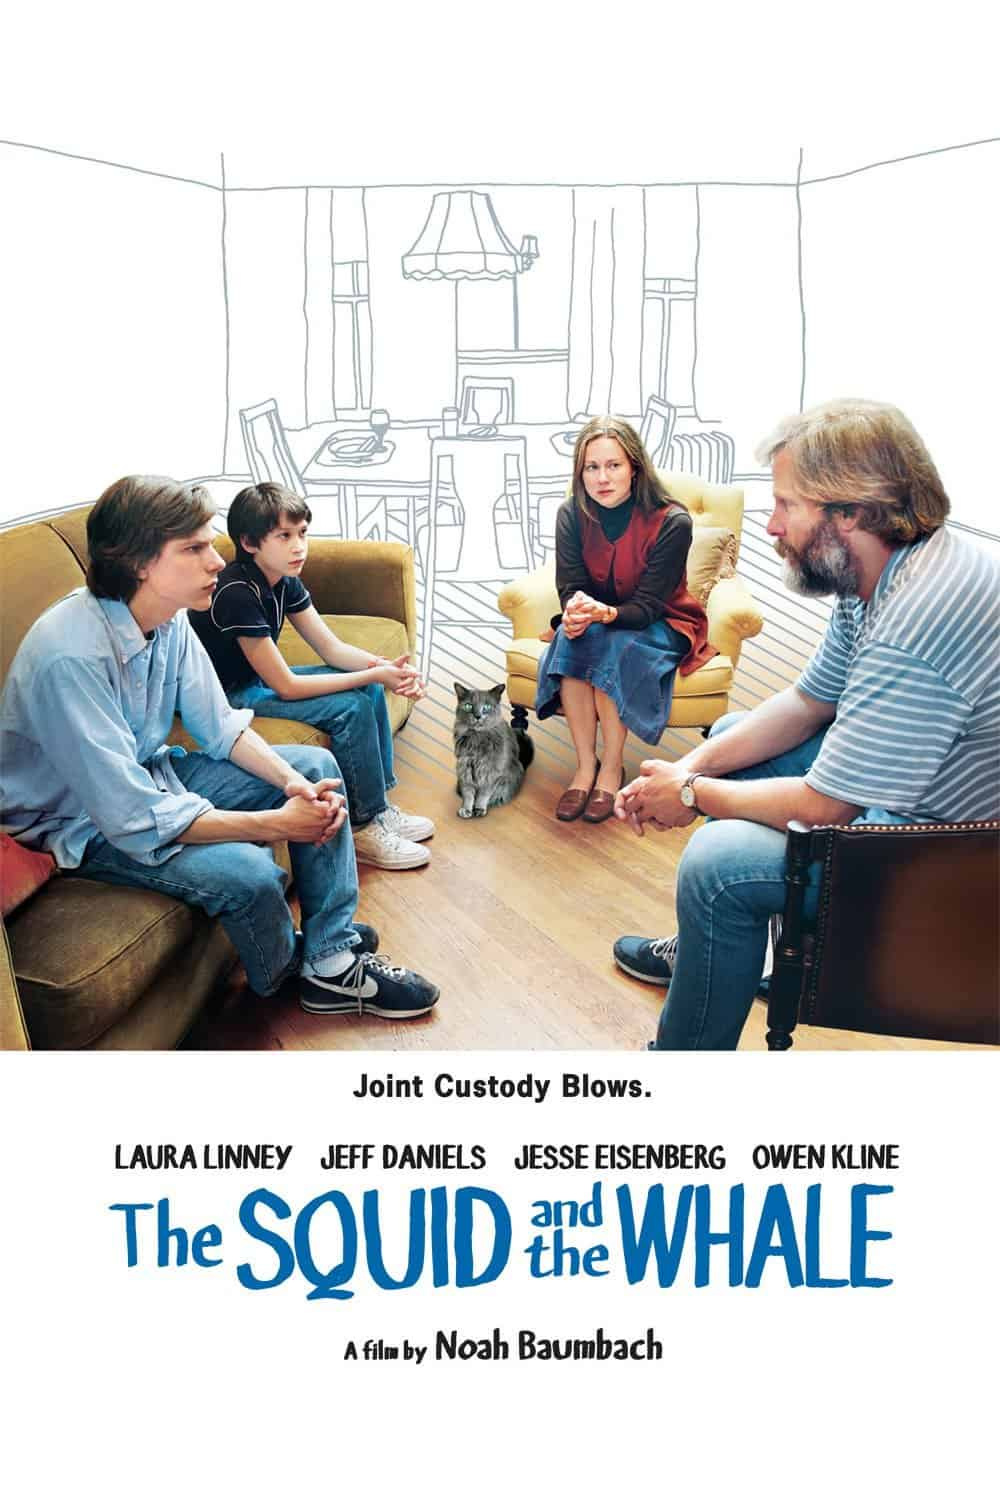 The Squid and the Whale, 2005